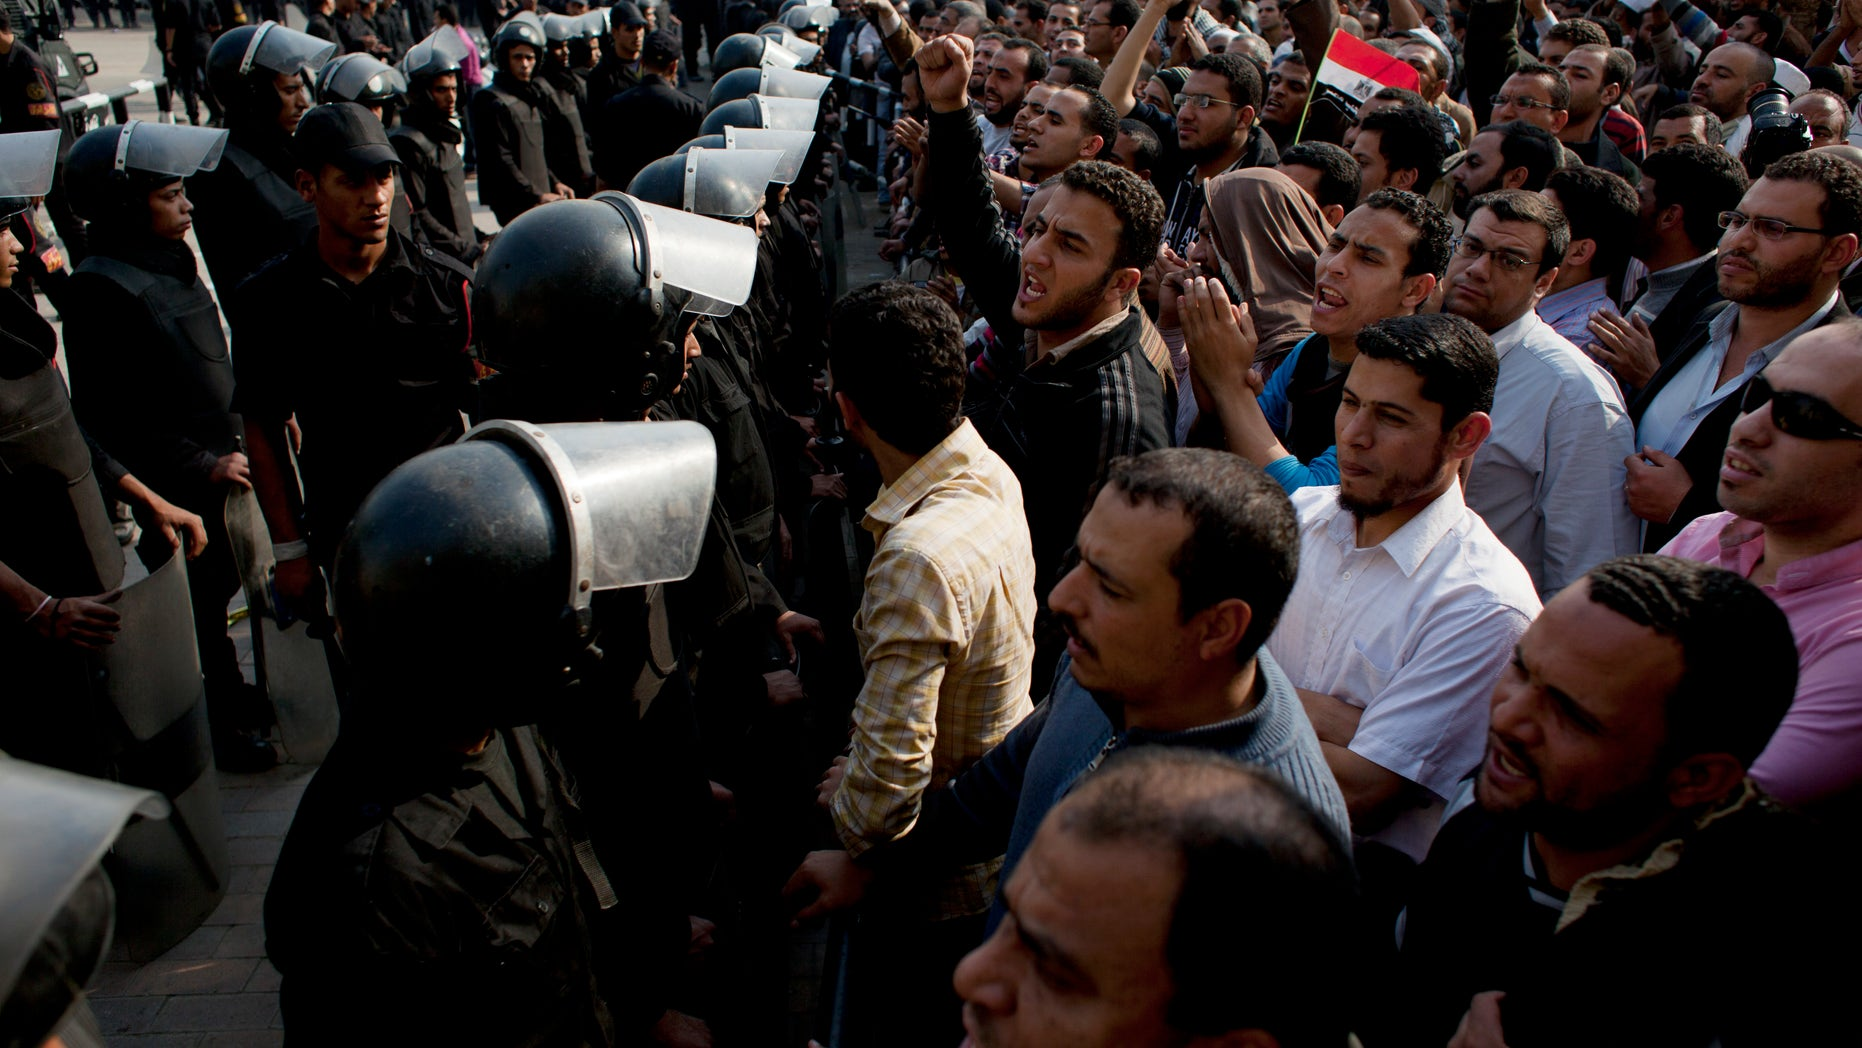 Dec. 2, 2012 - Supporters of Egyptian President Mohammed Morsi chant slogans as riot police stand guard in front of the entrance of Egypt's top court, in Cairo.